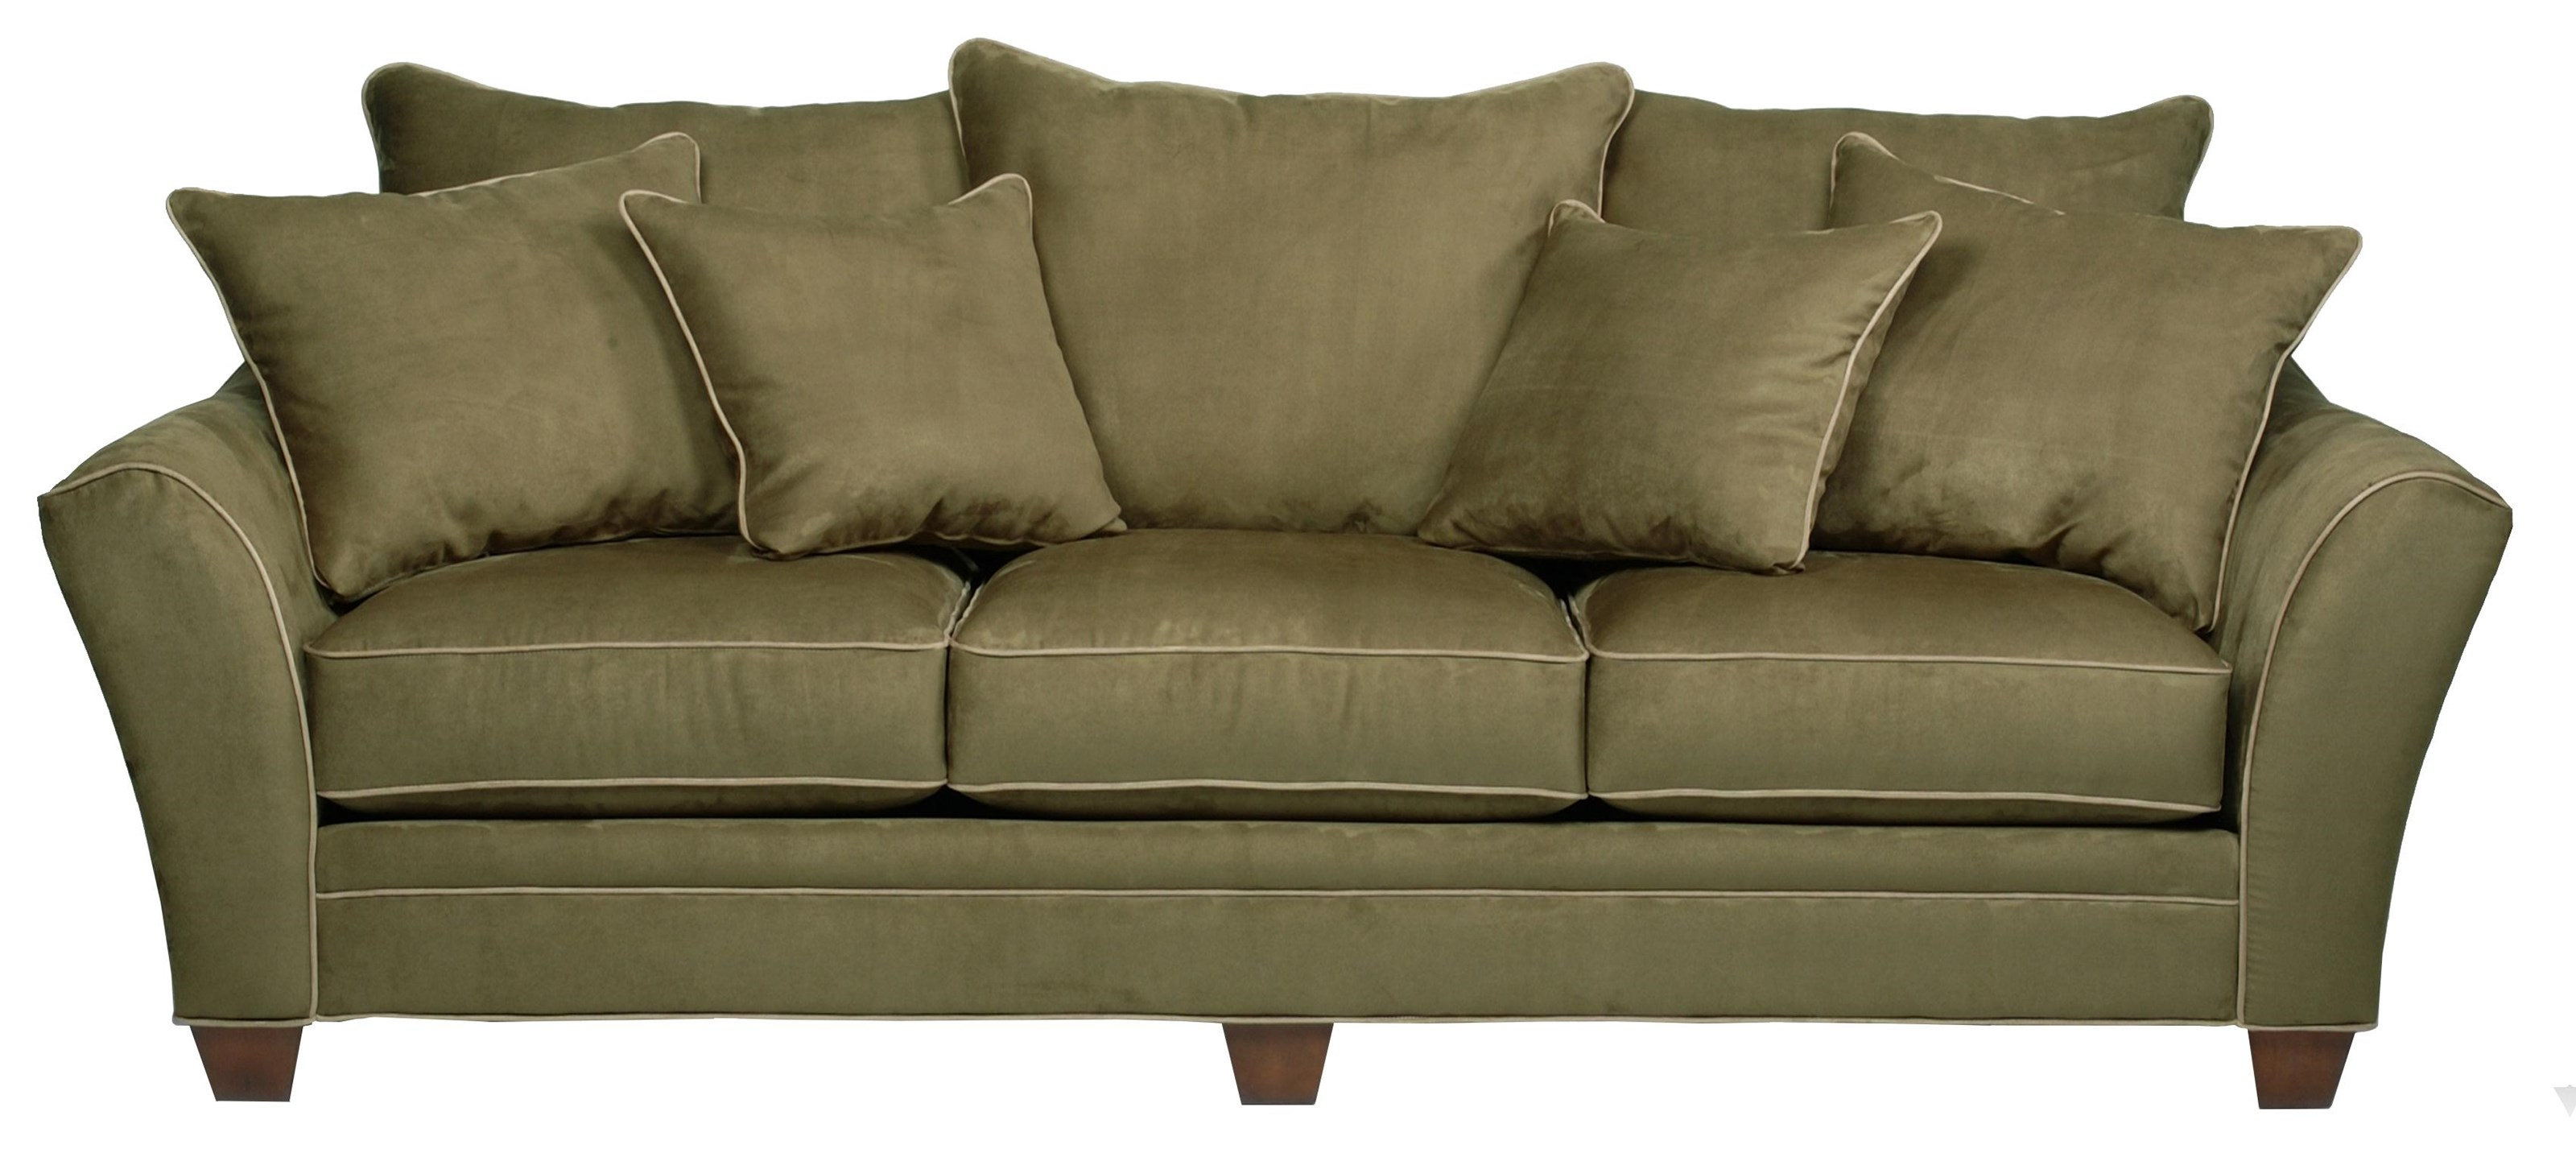 456 3-Seater Stationary Sofa by Sunset Home at Sadler's Home Furnishings